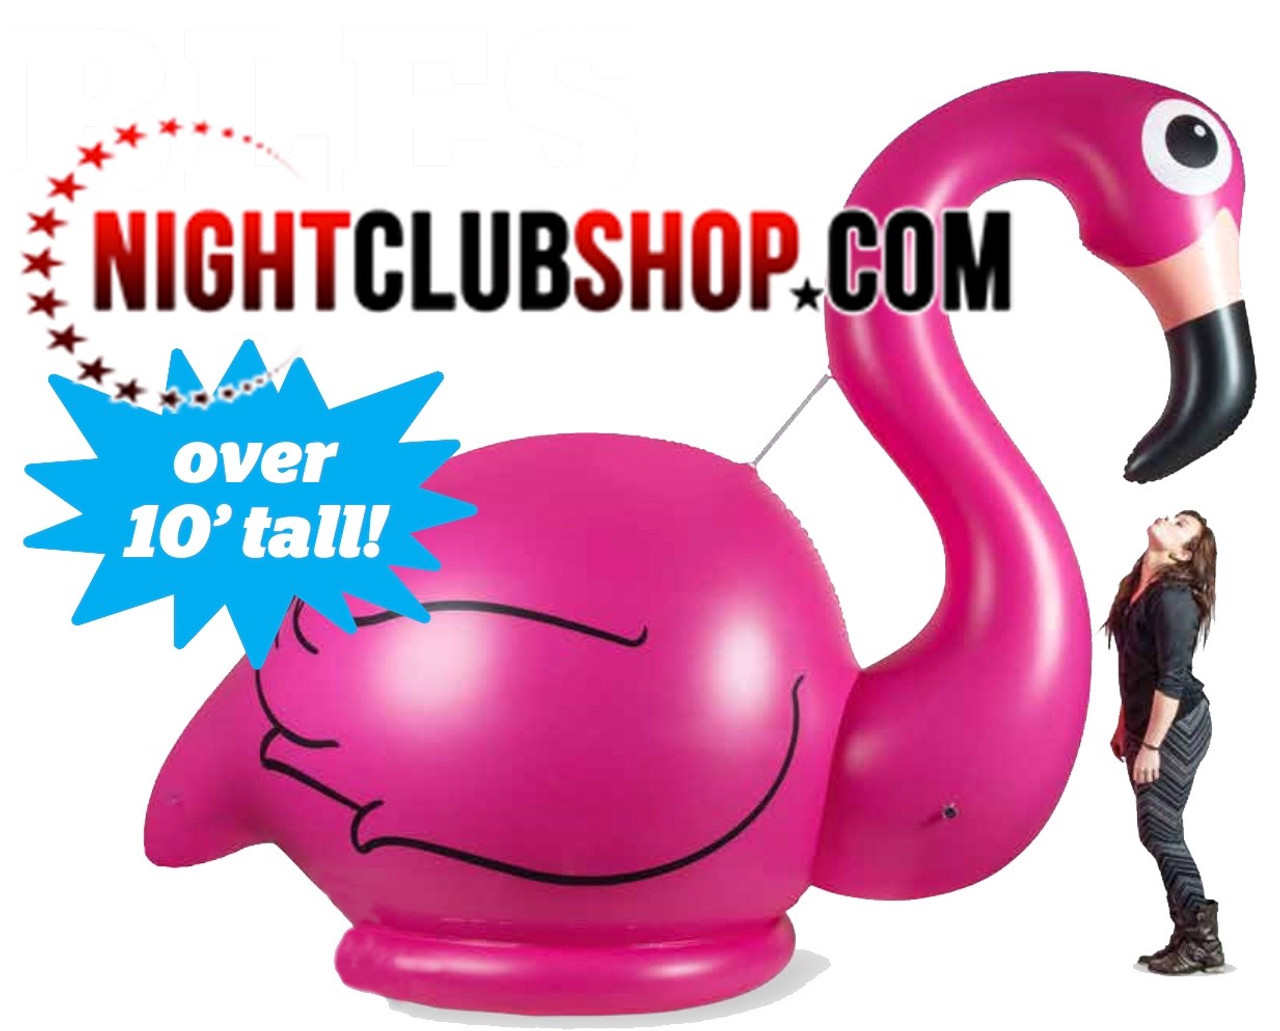 giant-gigantic-big-ass-10-foot-flamingo-inflatable-float-pool-party-summer-outdoors-nightclubshop-decoration-supplies-xxl